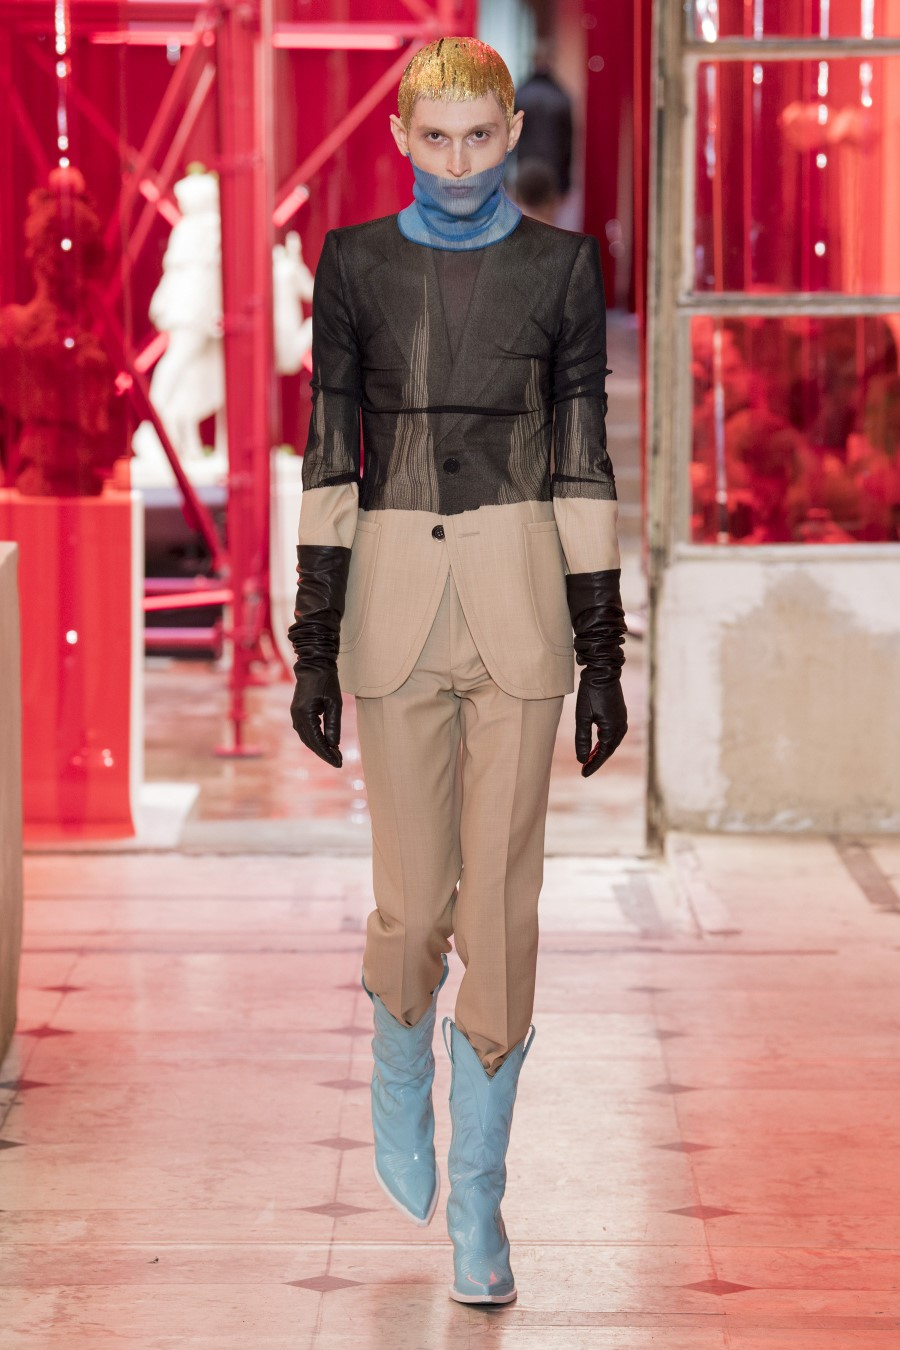 Maison Margiela Spring/Summer 2019 - Paris Fashion Week